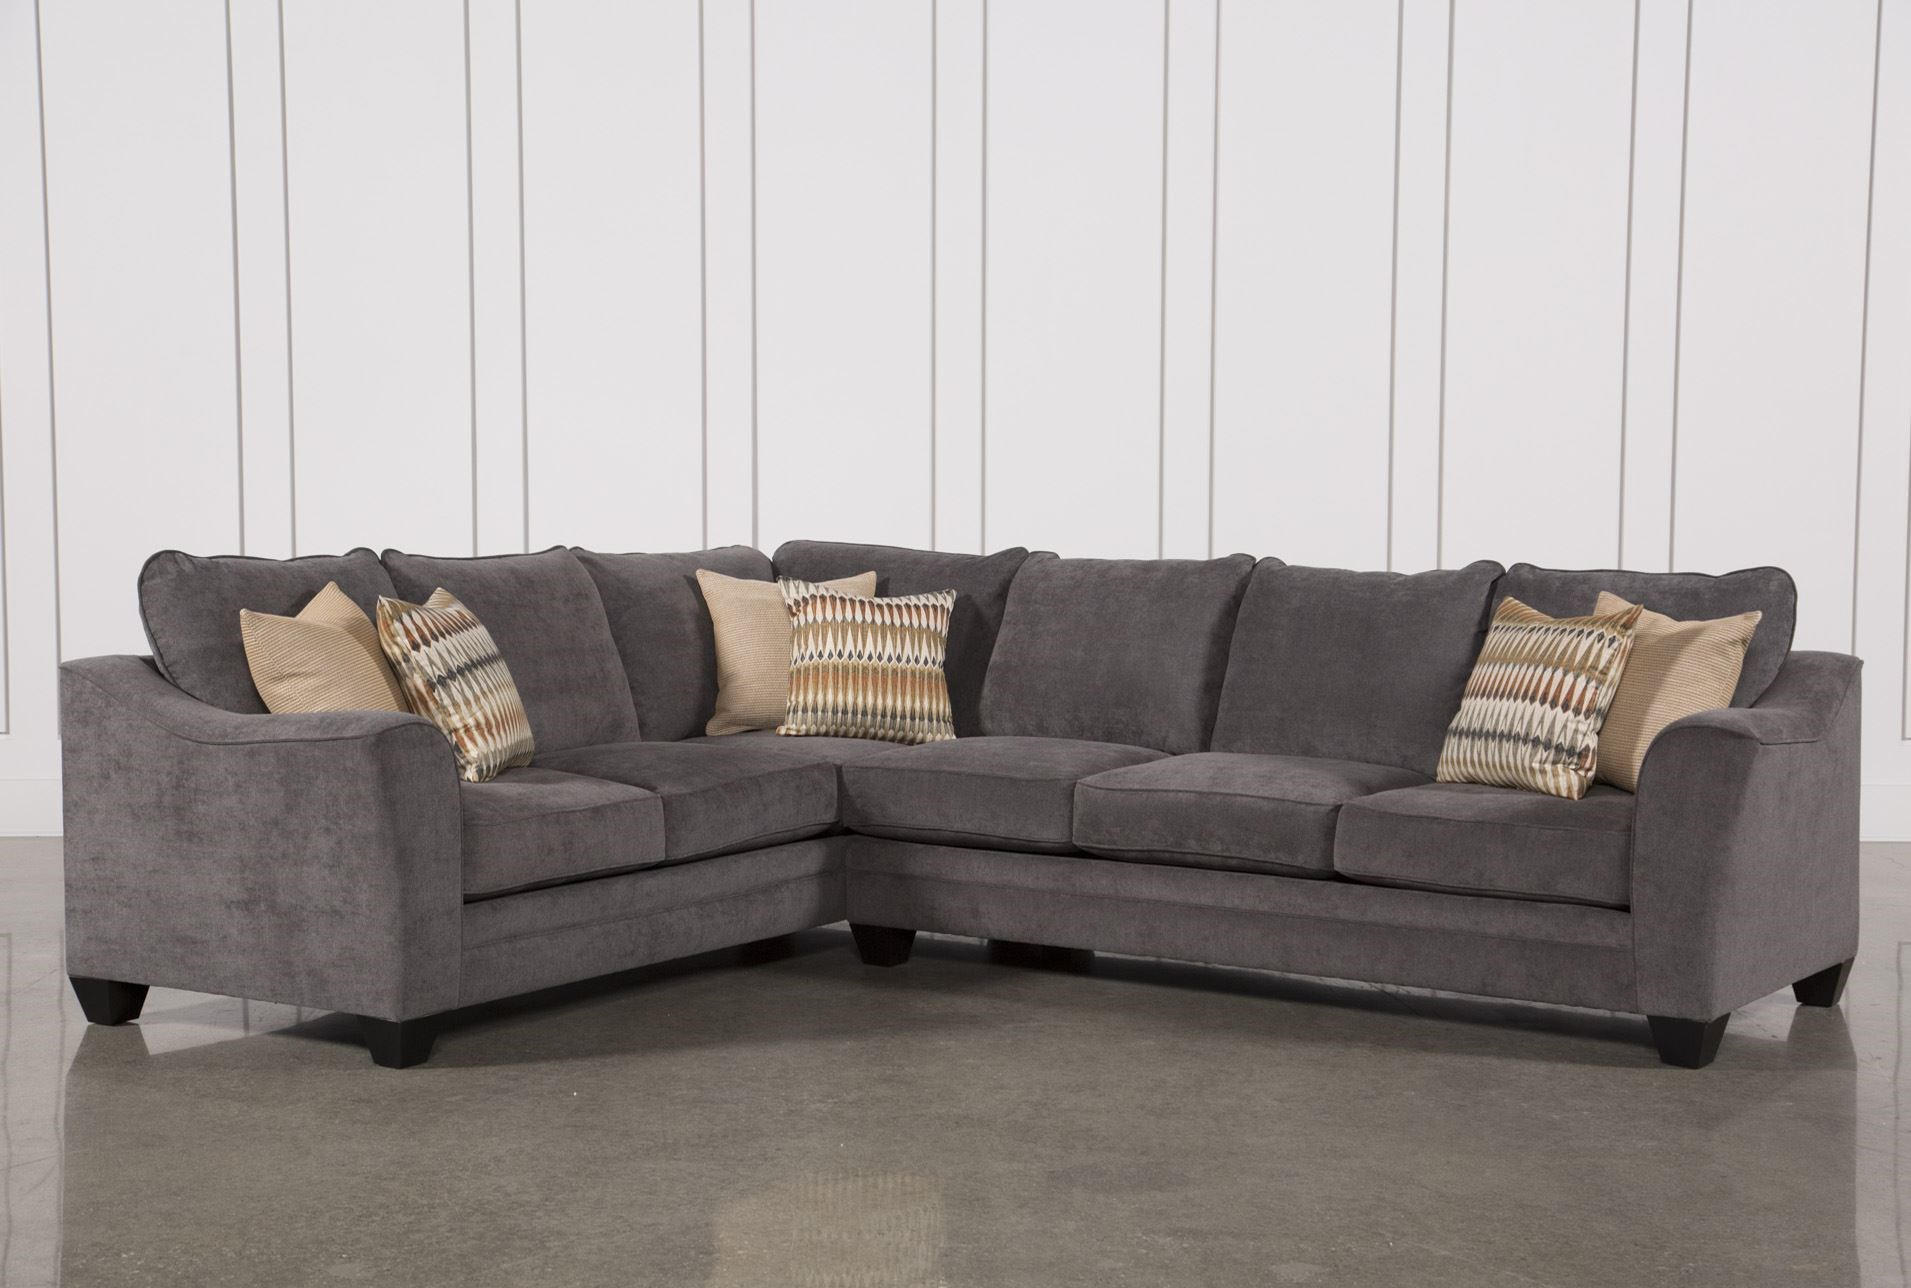 Mesa foam 2 piece sectional qty 1 has been successfully added to your cart